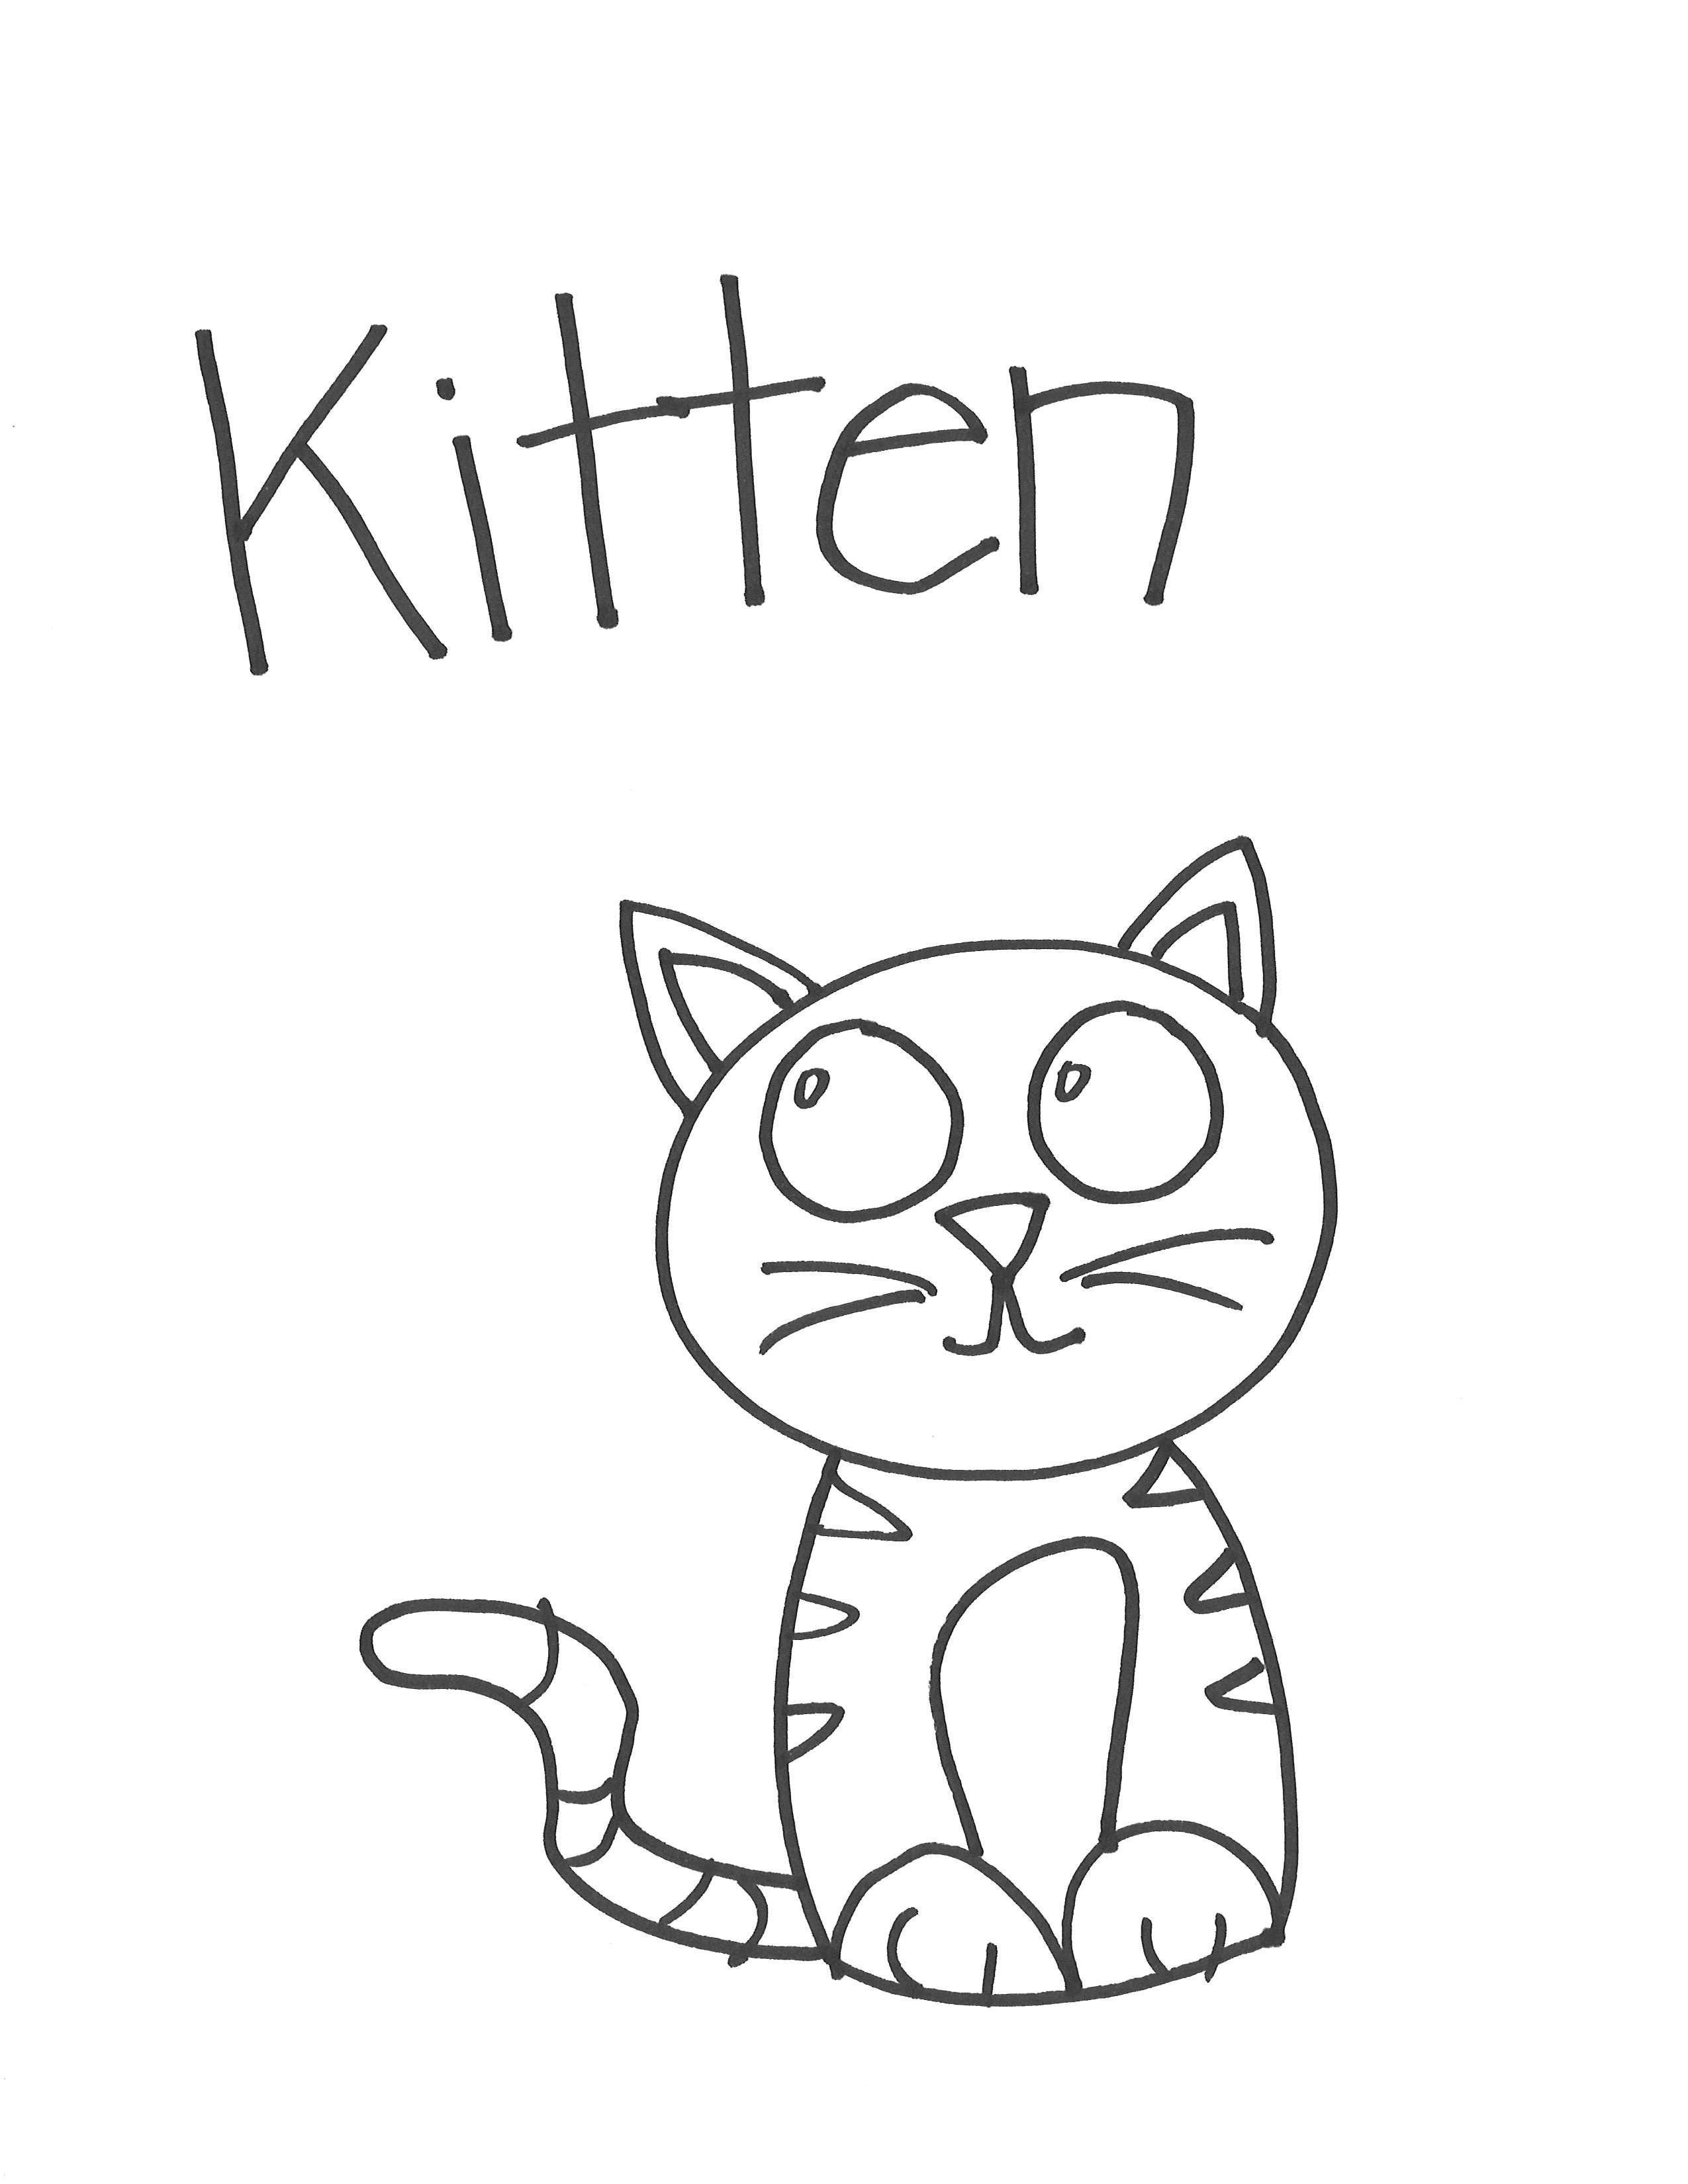 Drawn kitten easy #13